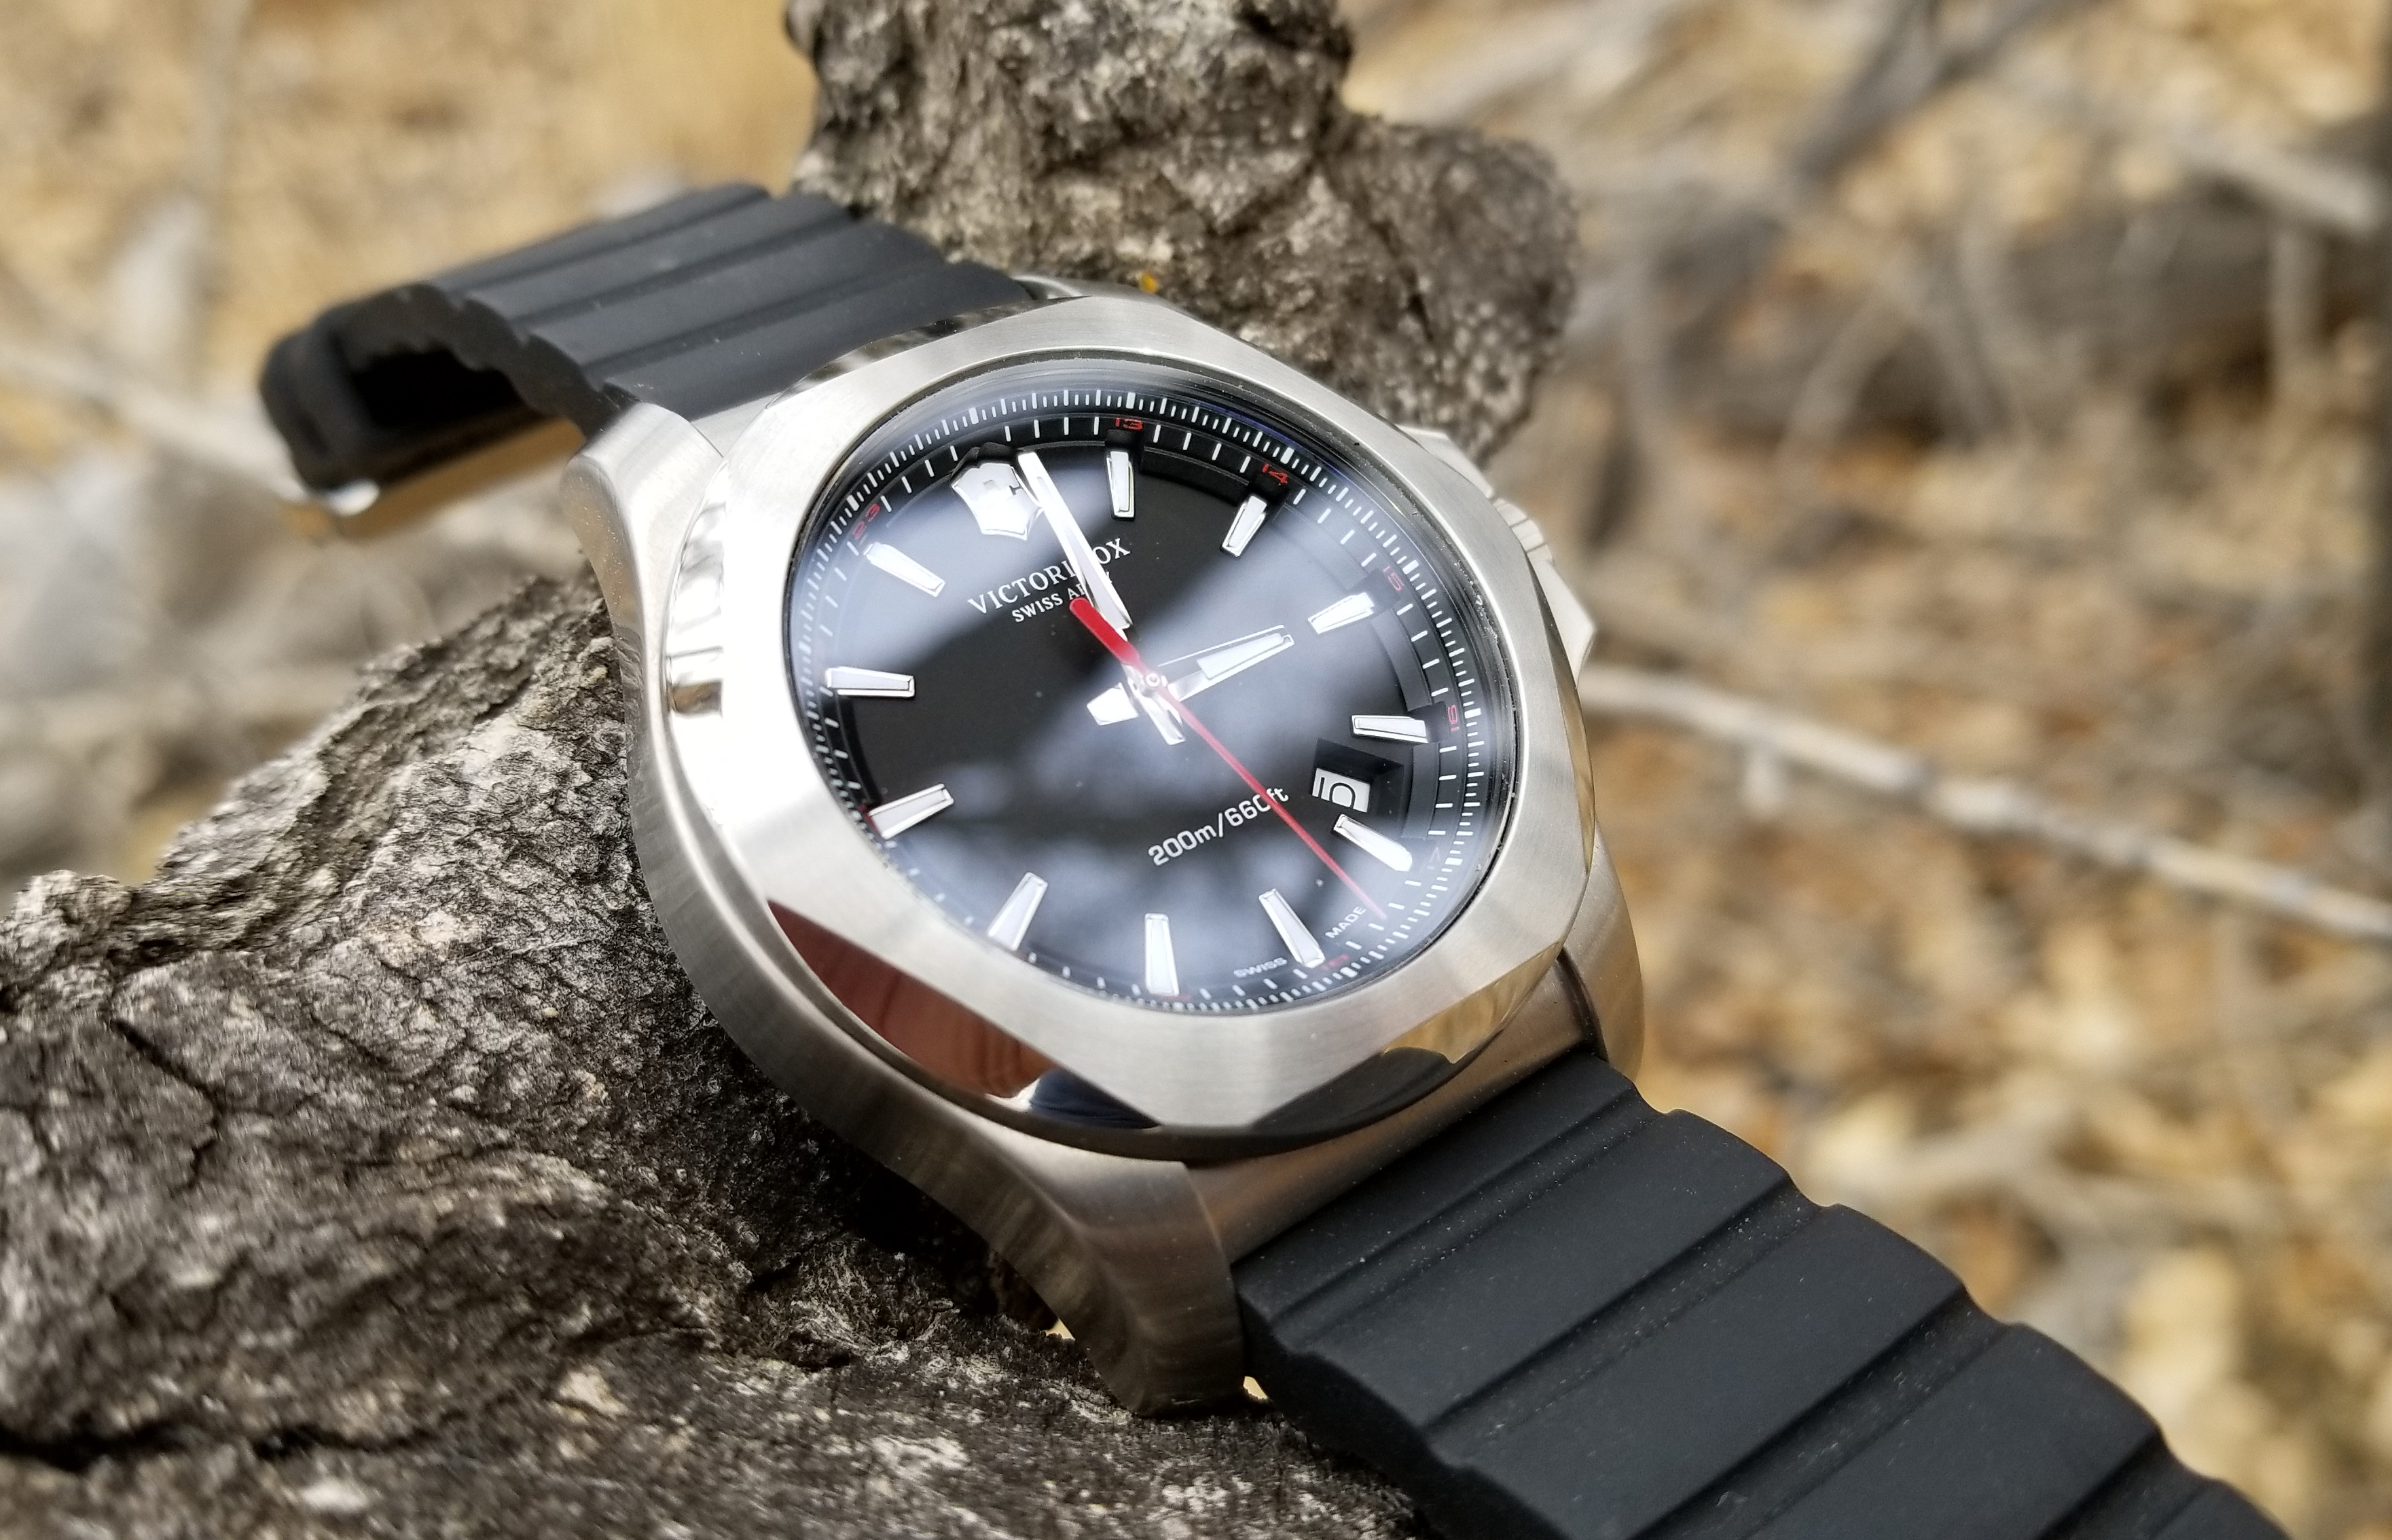 Titanium Victorinox INOX Watch Review – Most Durable Men's Watch Ever